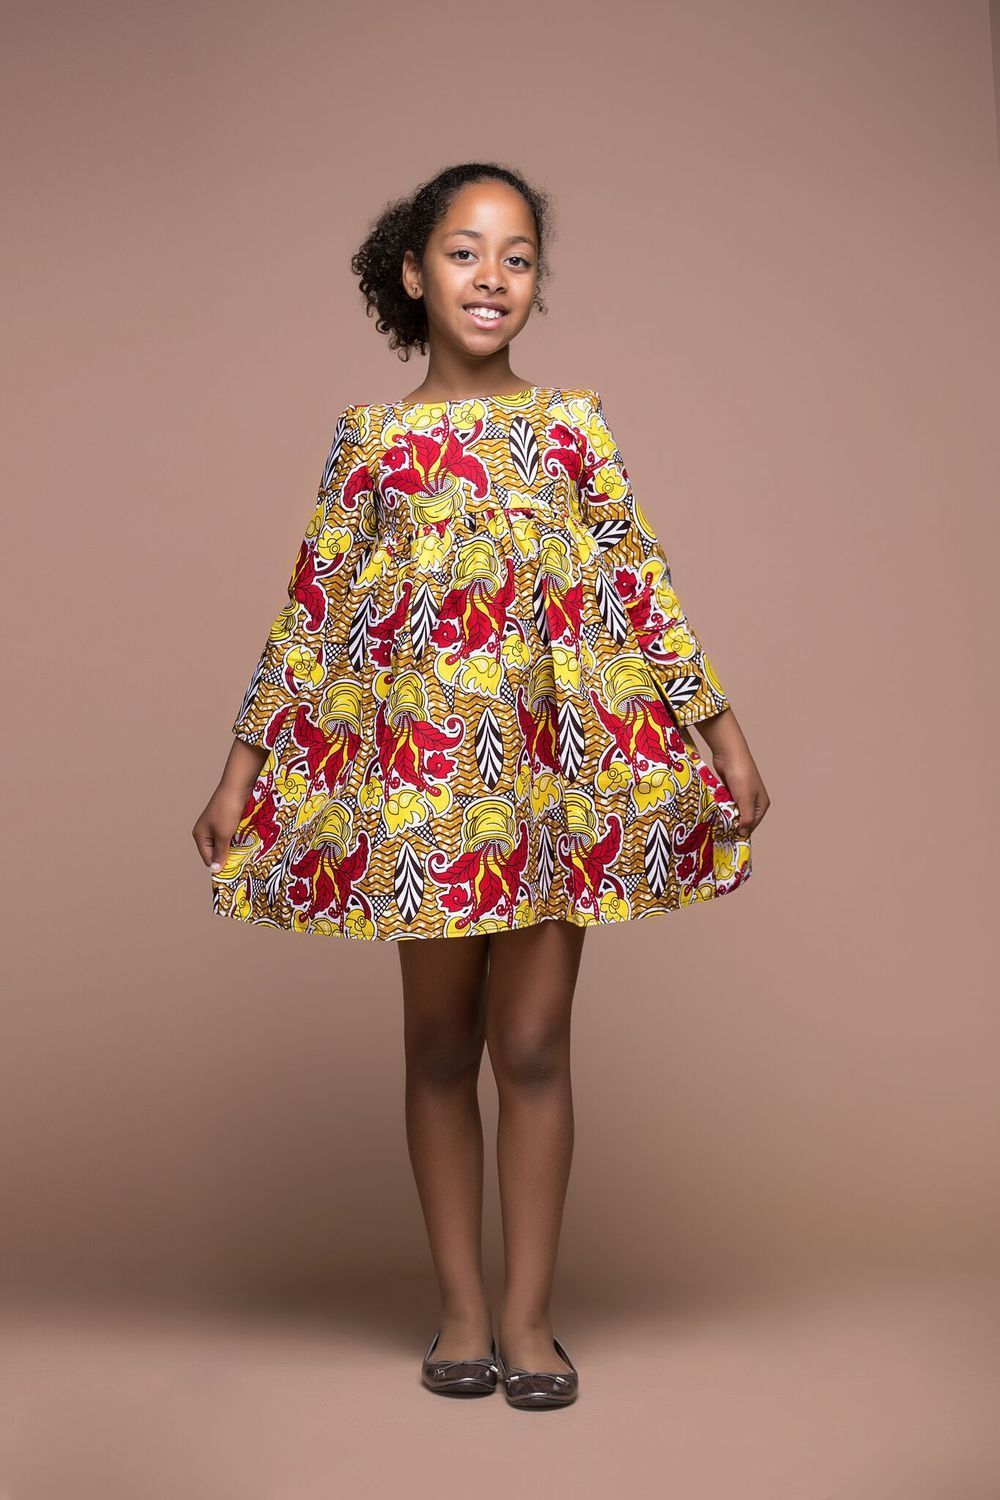 372dba15b3d551 AFRICAN PRINT NATA KID'S DRESS | Products | Kids outfits, African ...